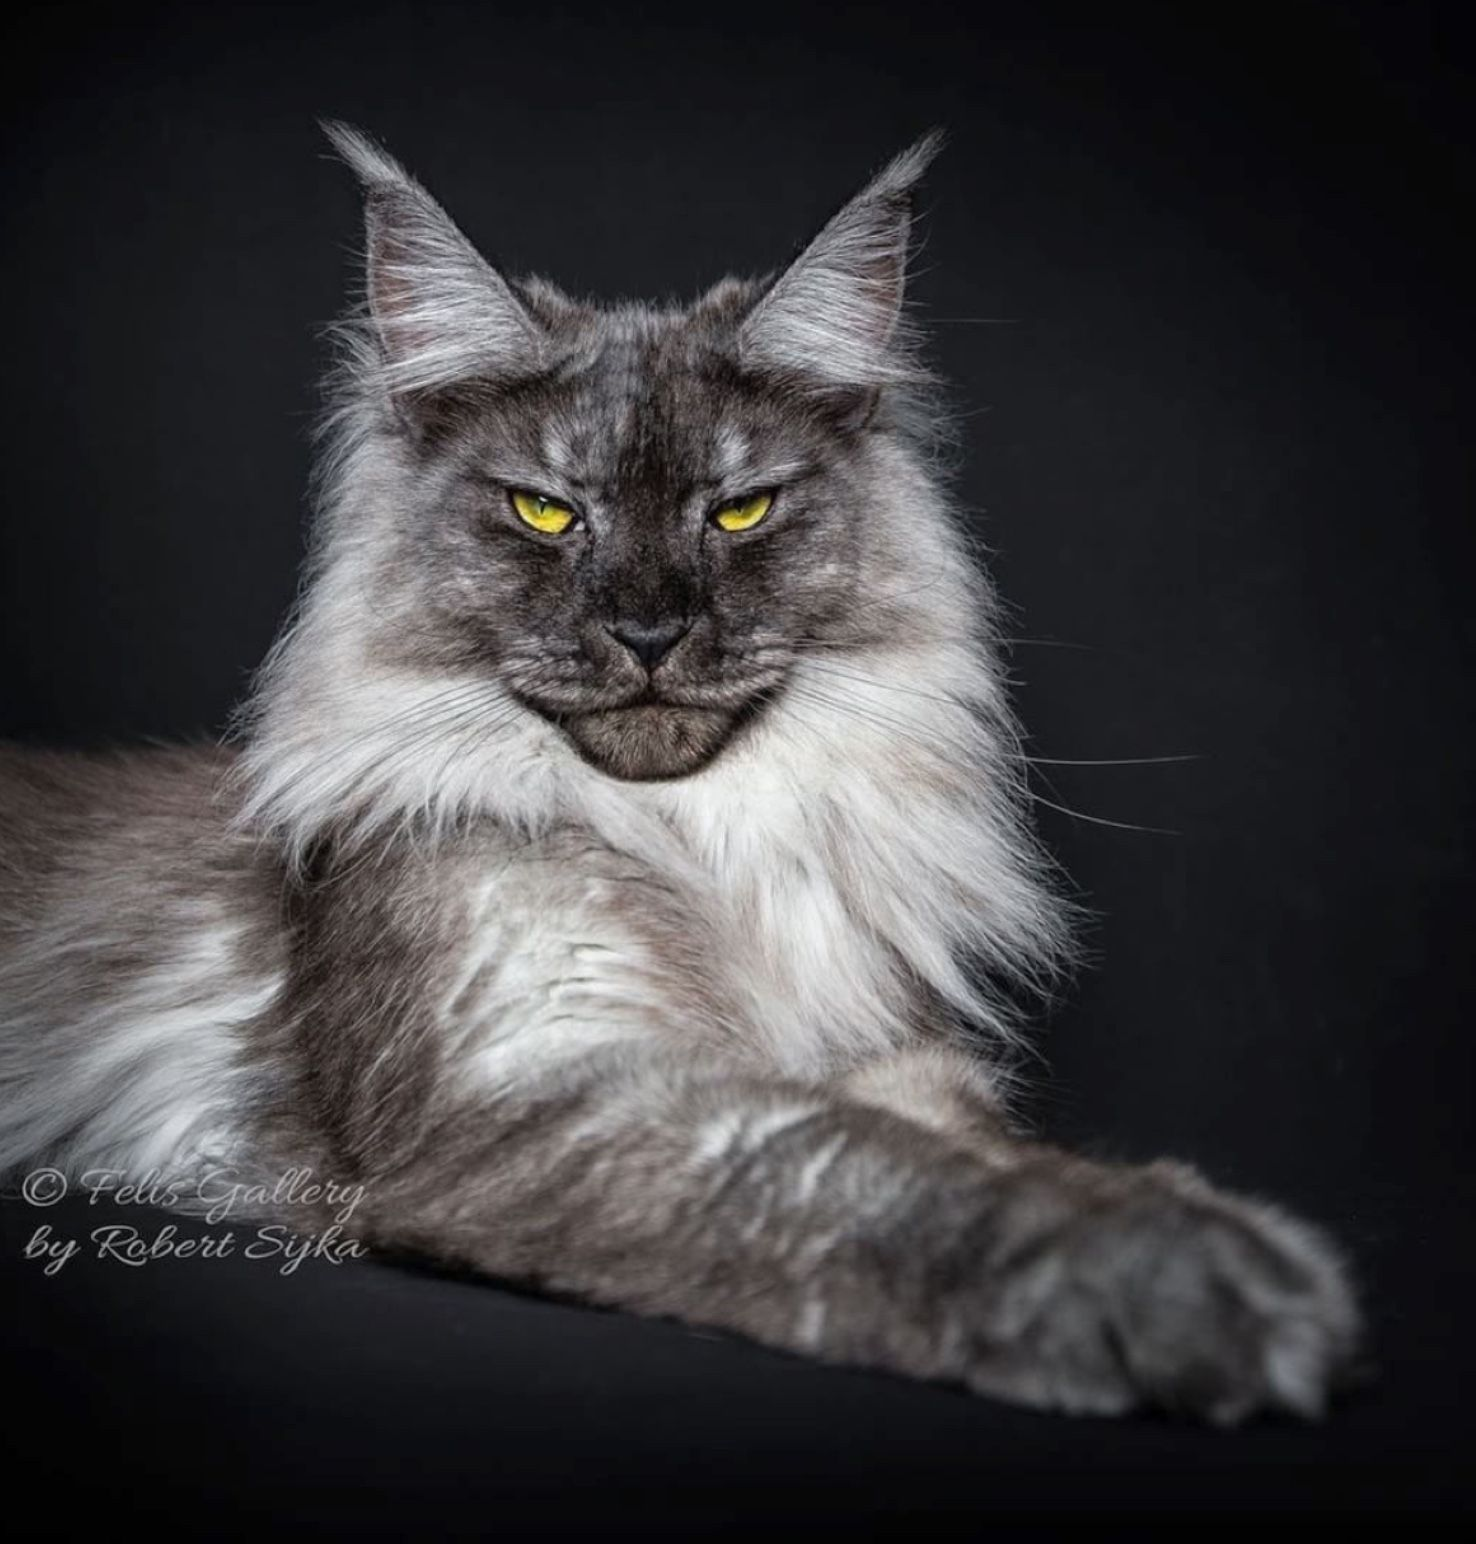 Gorgeous smokey silver Maine Coon cat with golden eyes